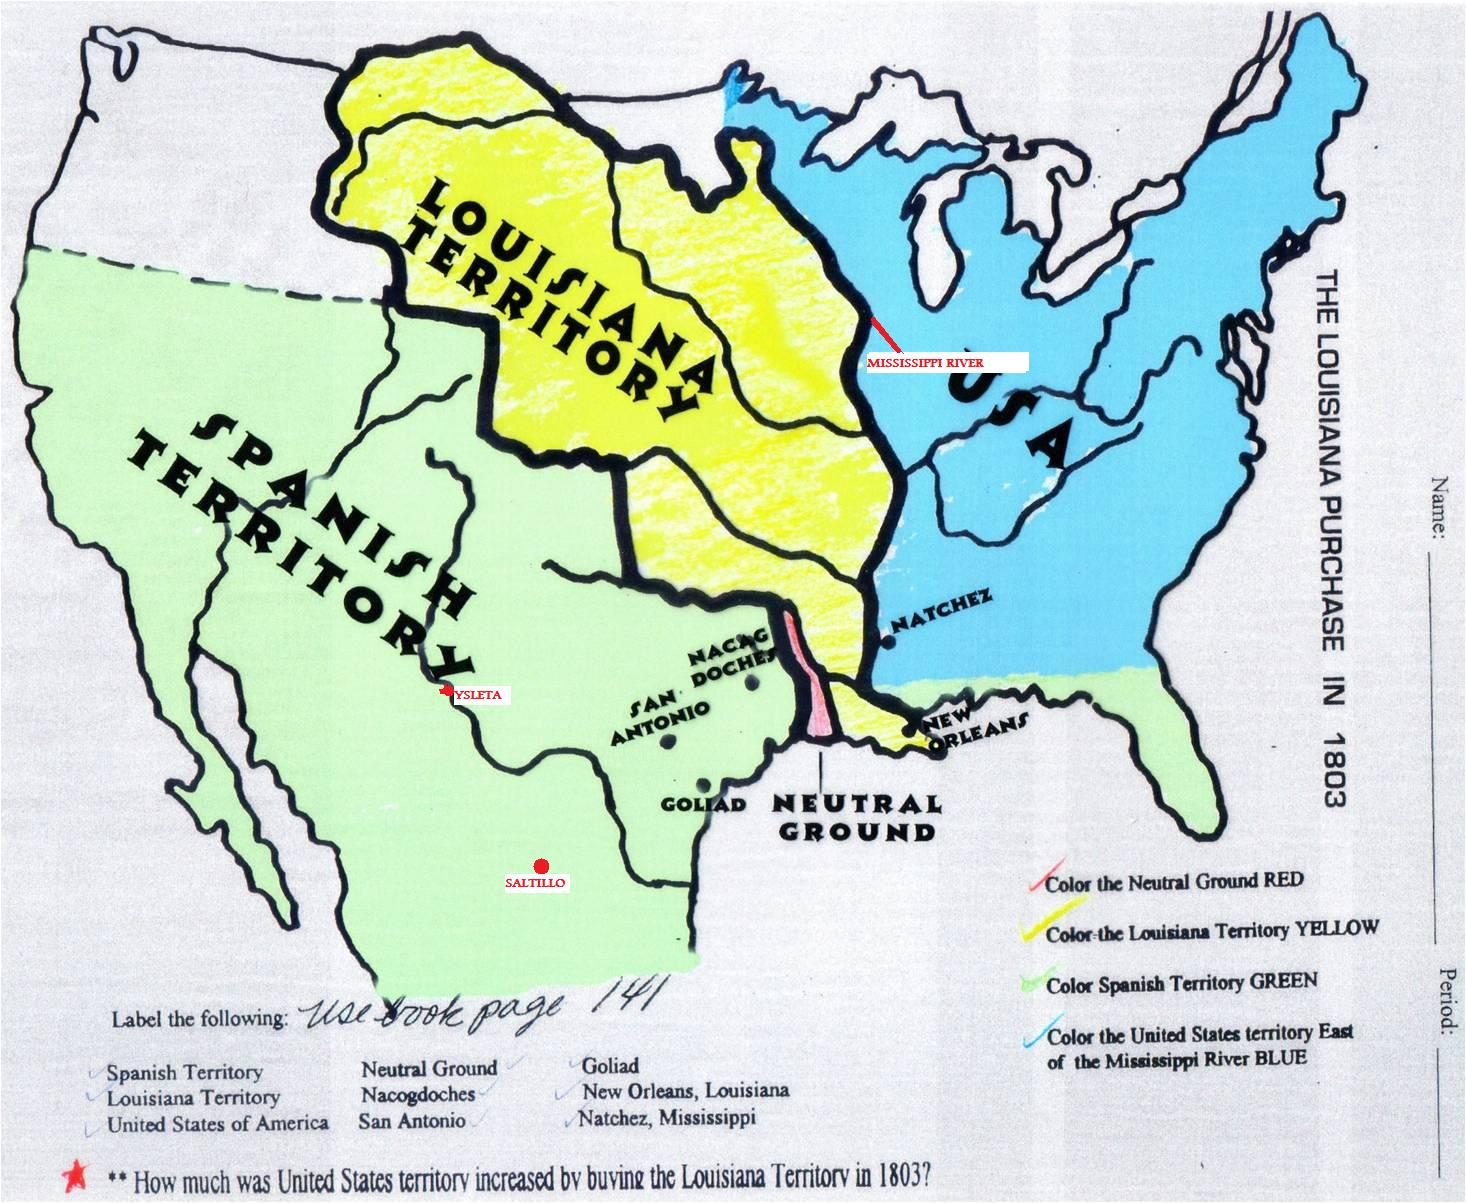 an overview of the louisiana purchase The louisiana purchase was one of the most important land acquisitions ever to be made by the united states and many say that it was what really qualified the us as a preeminent world power and rival of europe.